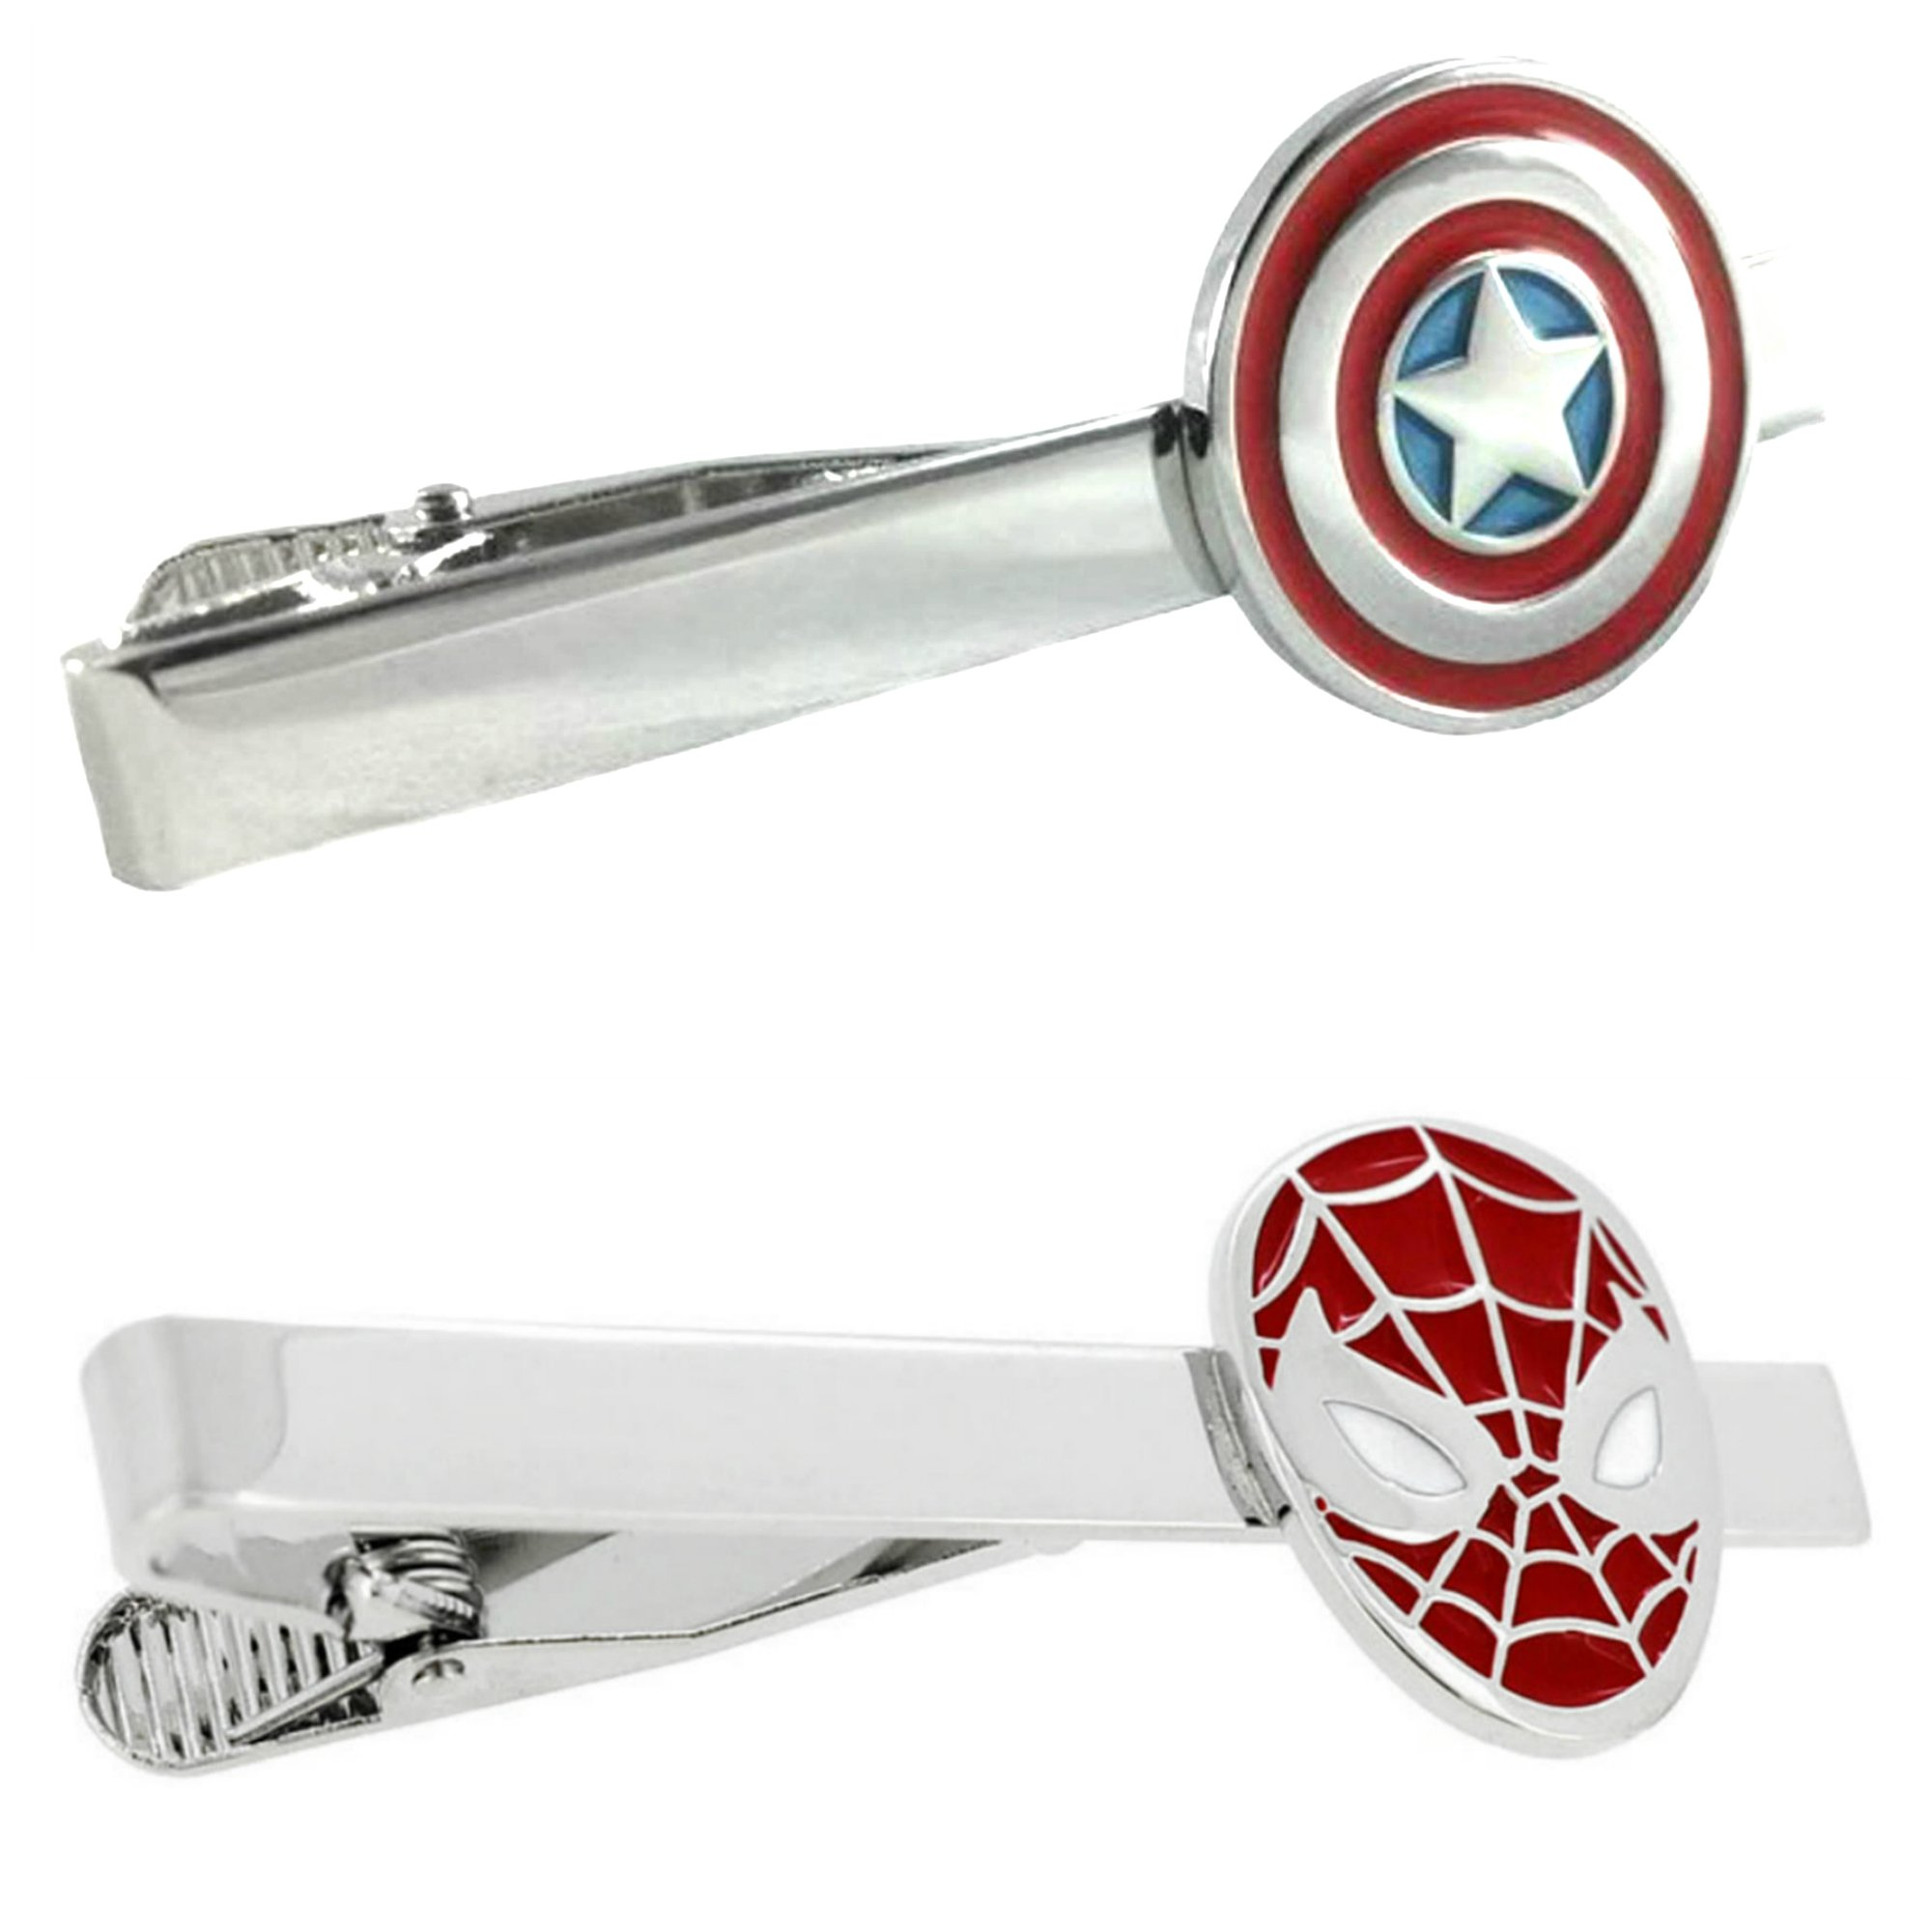 Outlander Marvel Comics - Captain America & Spiderman - Tiebar Tie Clasp Set of 2 Wedding Superhero Logo w/Gift Box